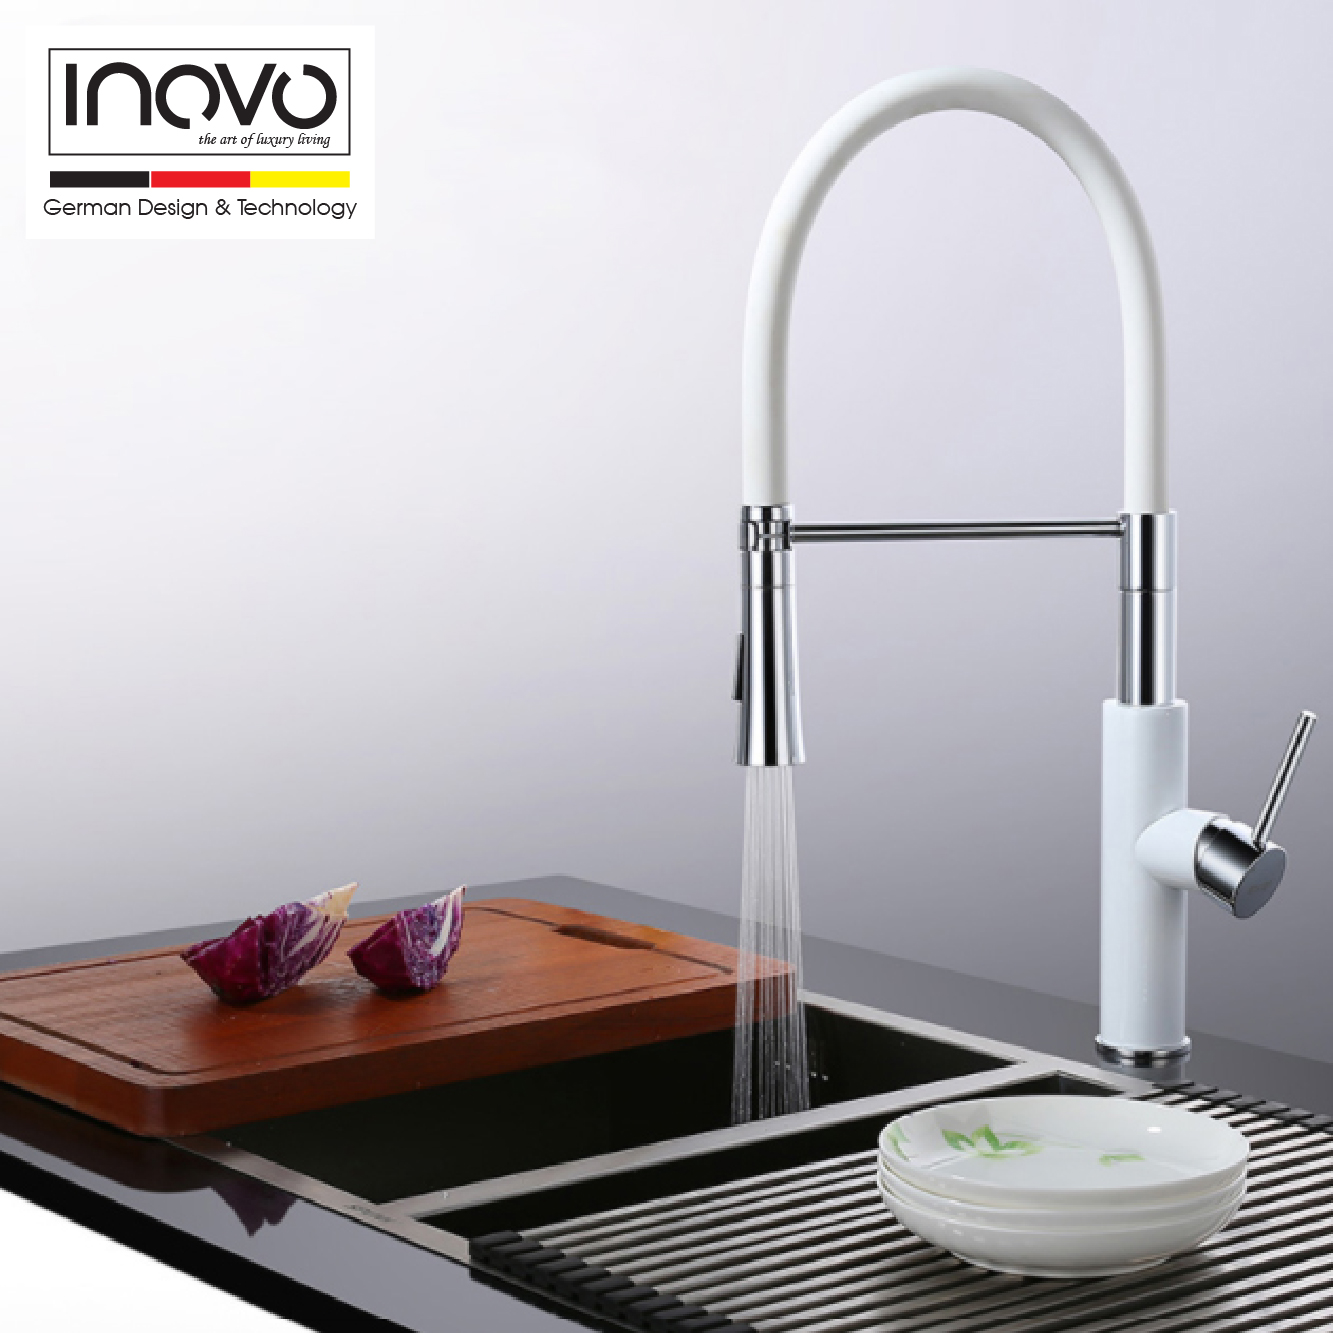 Design Lovers Will Adore The Distinctive Silhouette Based On A Series Of  Cylinders,while The Hard Working Cook Will Appreciate The Finger Tip  Control And ...